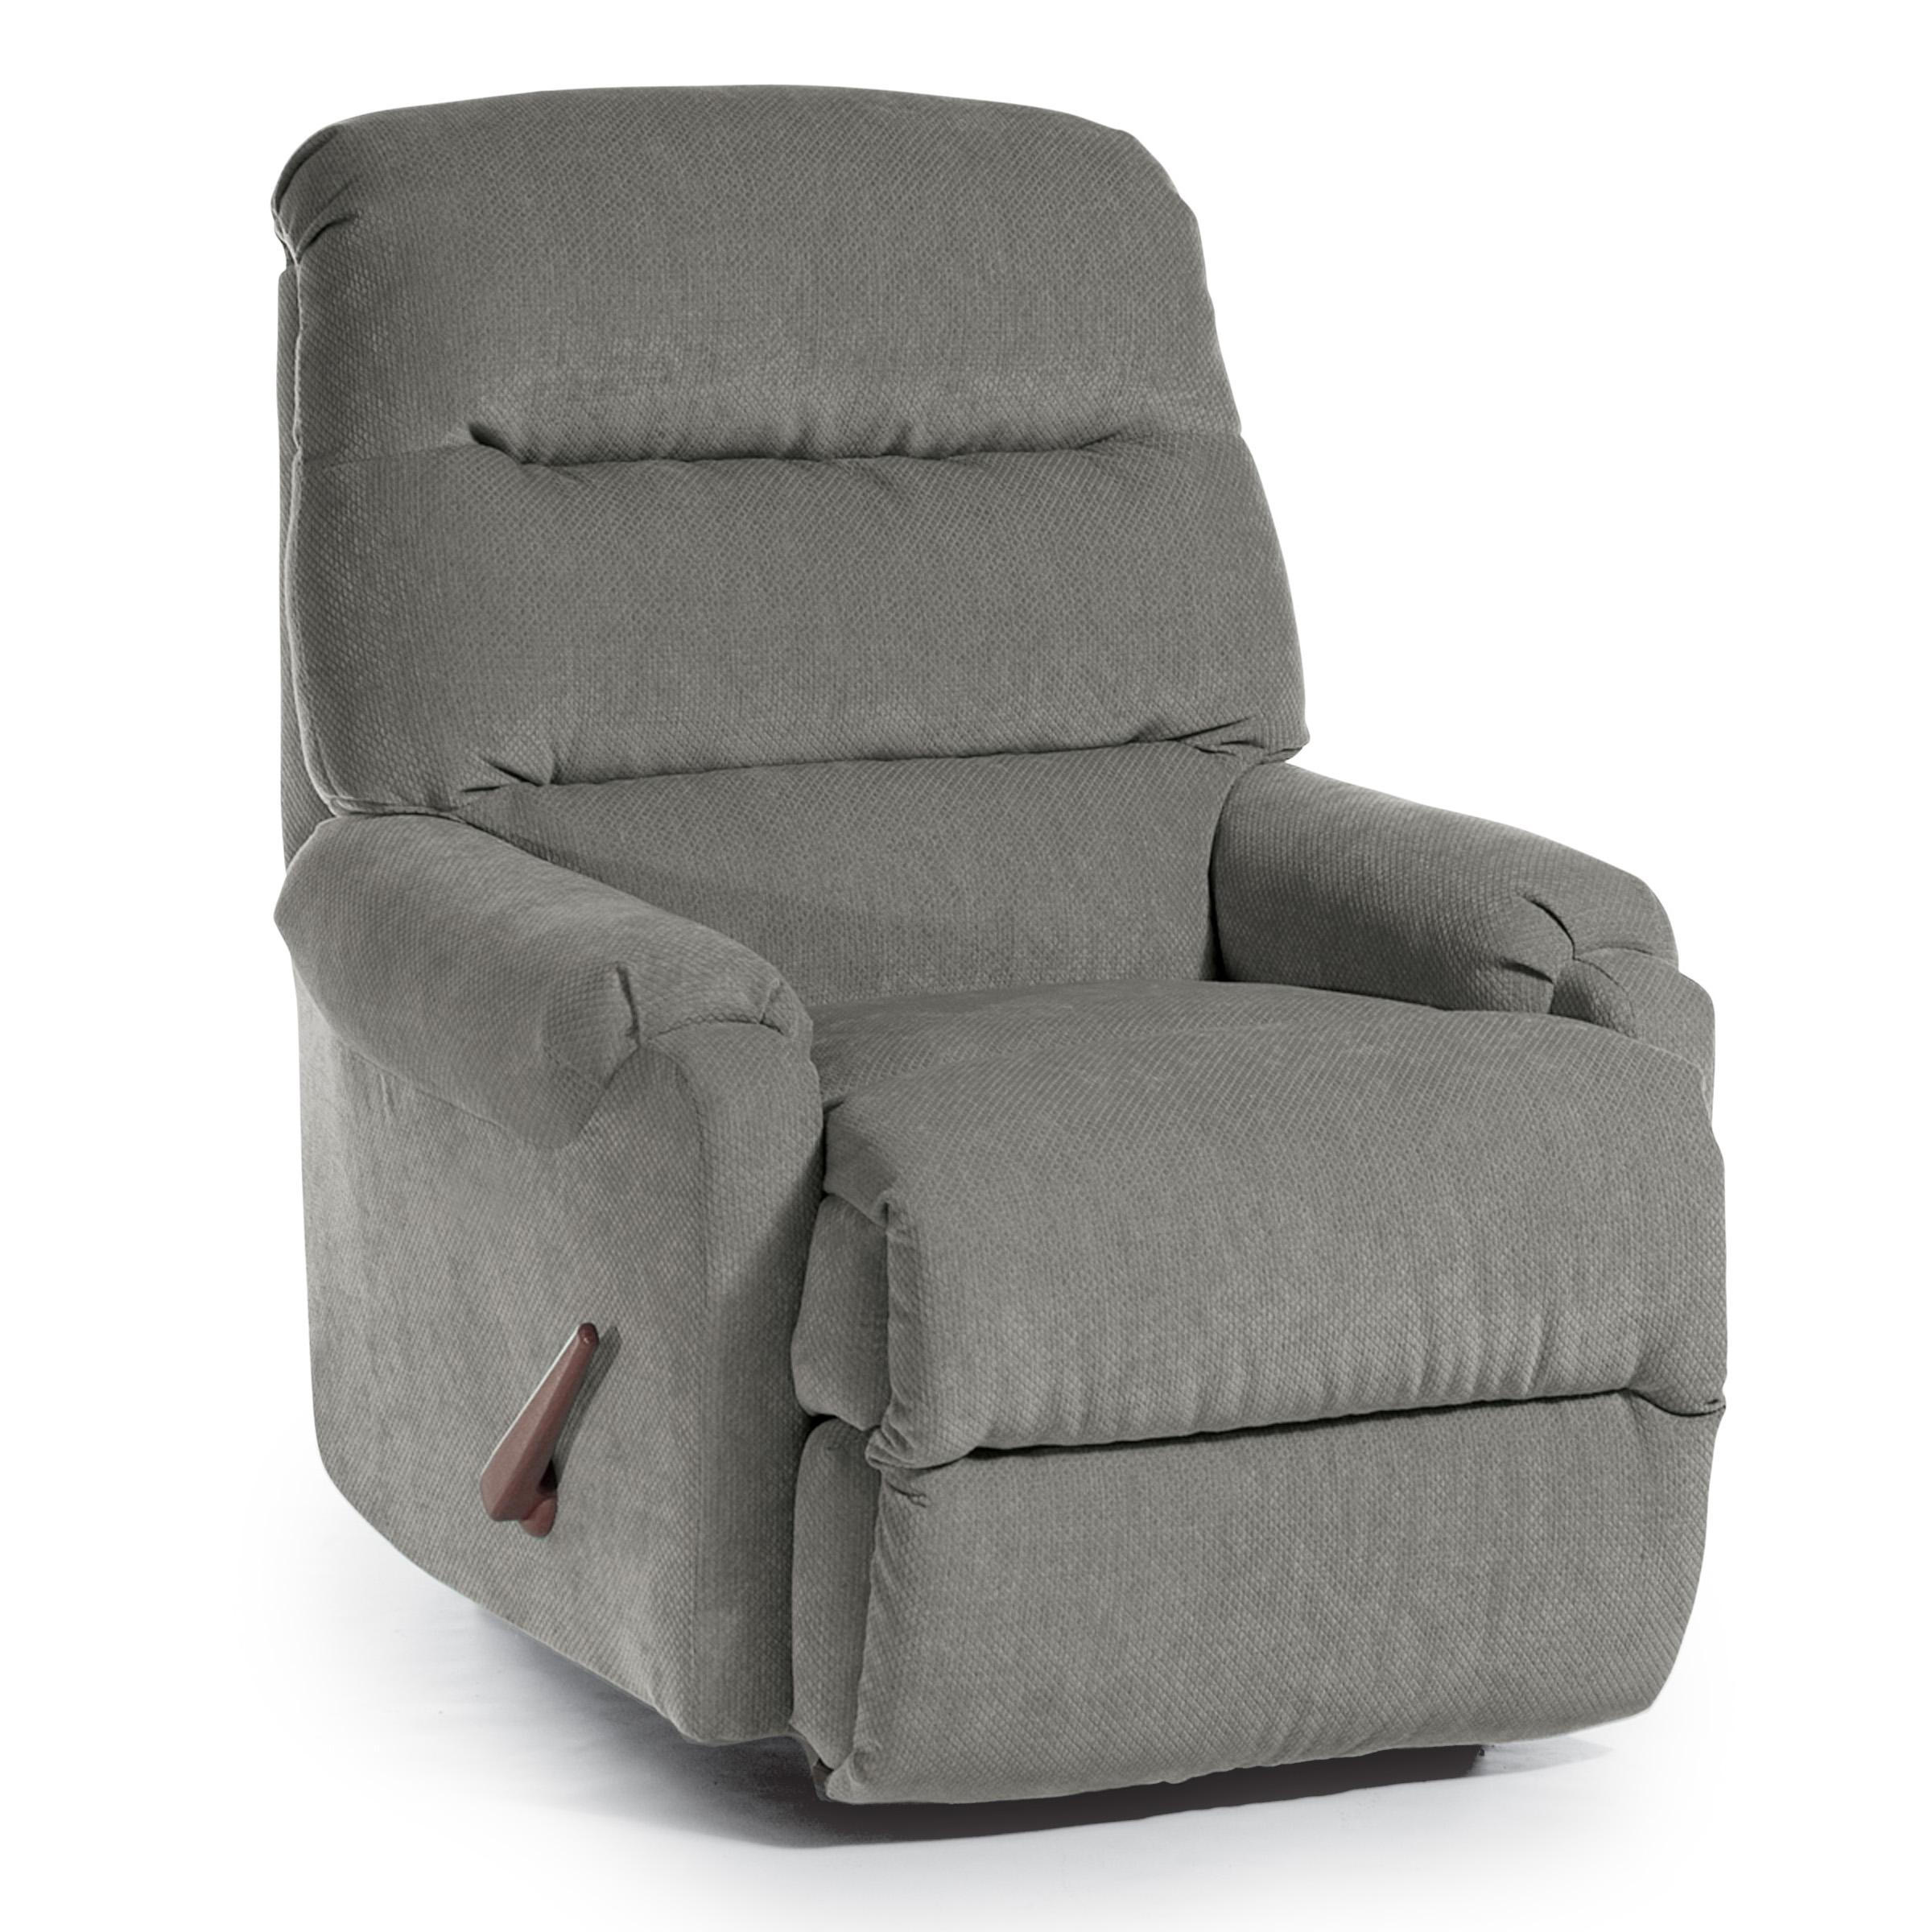 Best Home Furnishings Recliners - Medium Sedgefield Swivel Rocker Recliner - Item Number: 9AW69